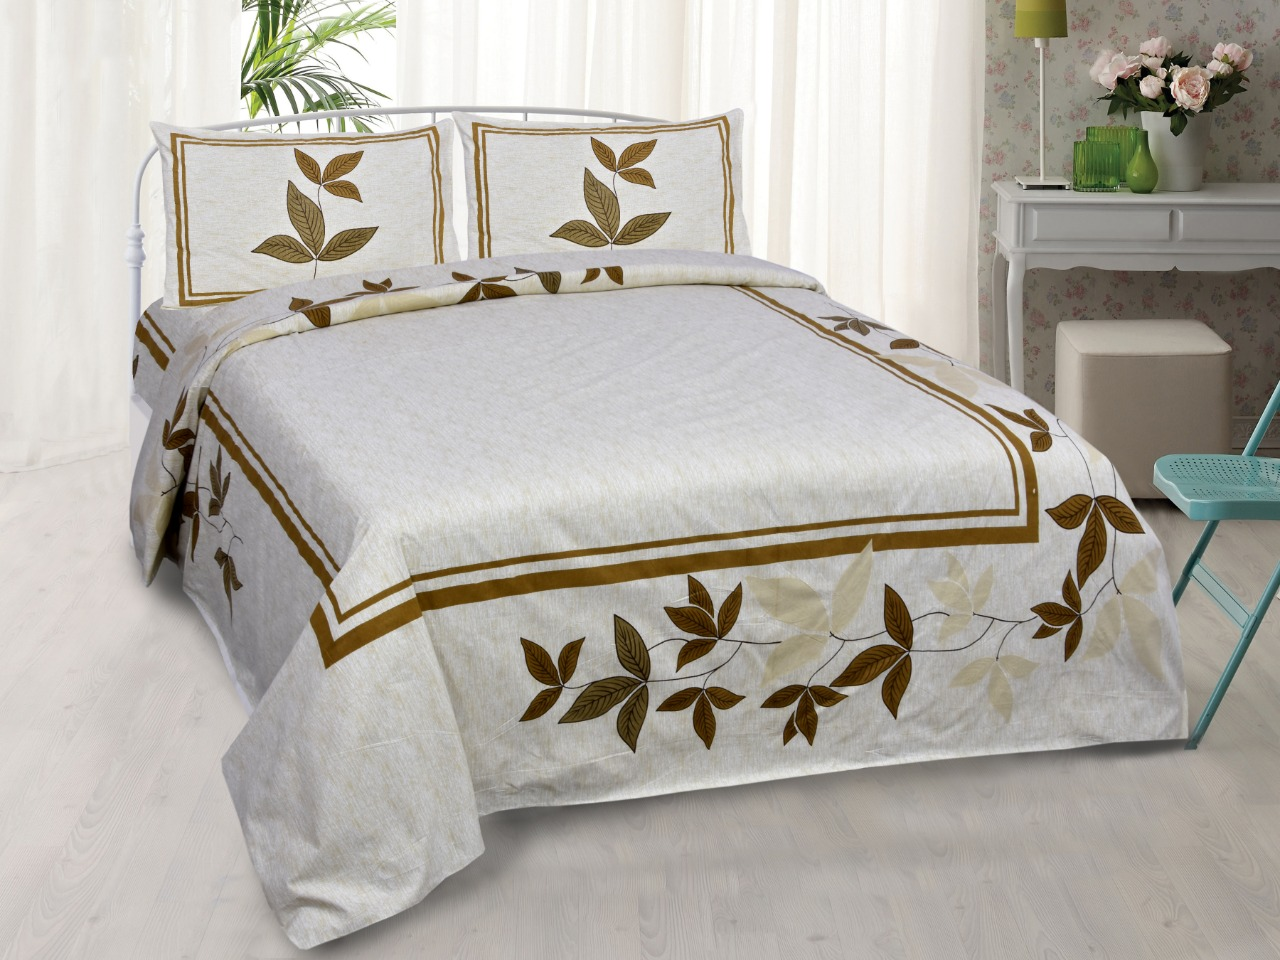 Pure Cotton King Size Bedsheet Pillow Cover Bedding set Tapestry Floral Bedsheet